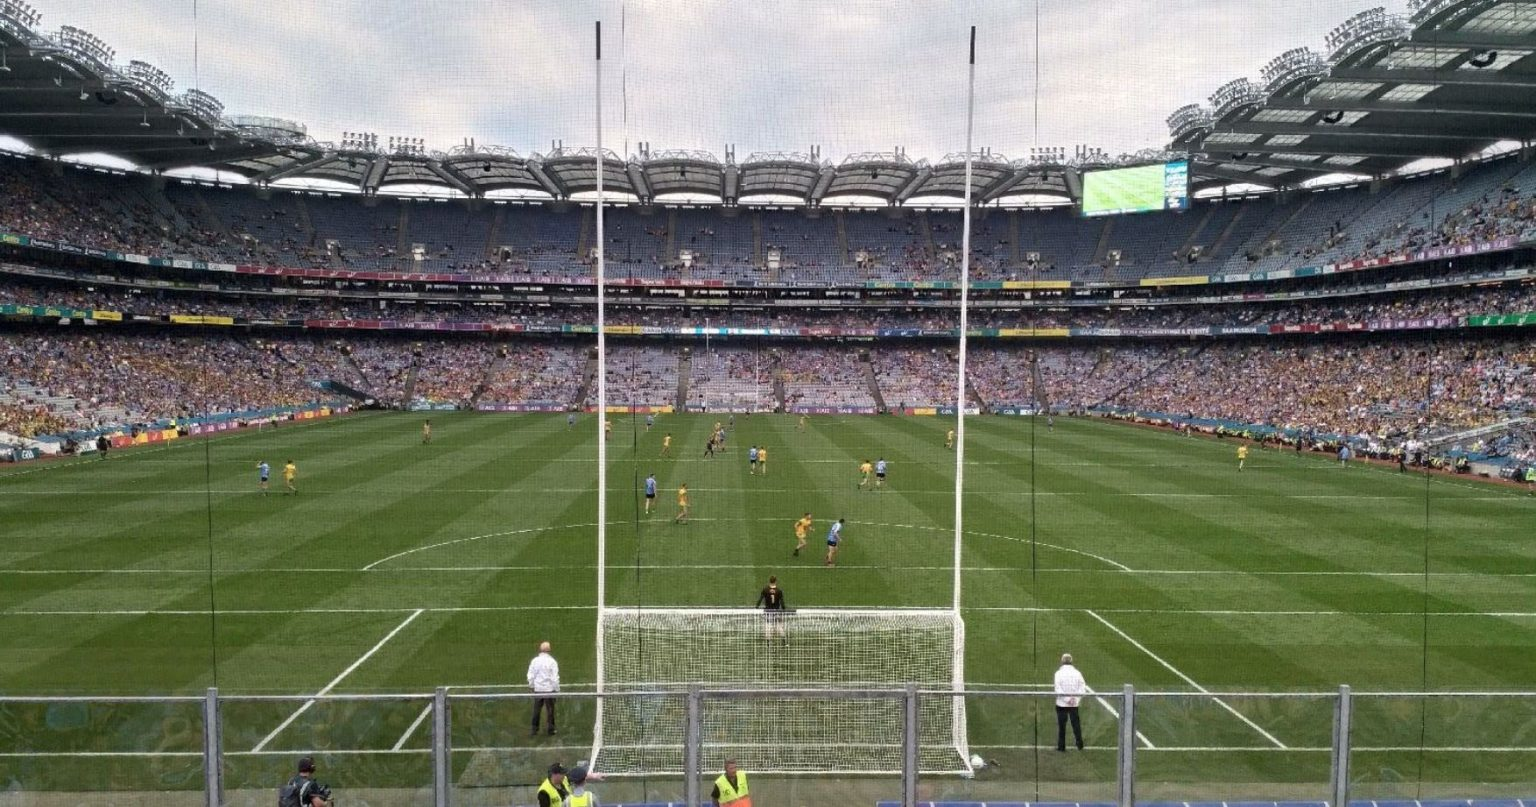 Niall Scully - Dublin v Donegal